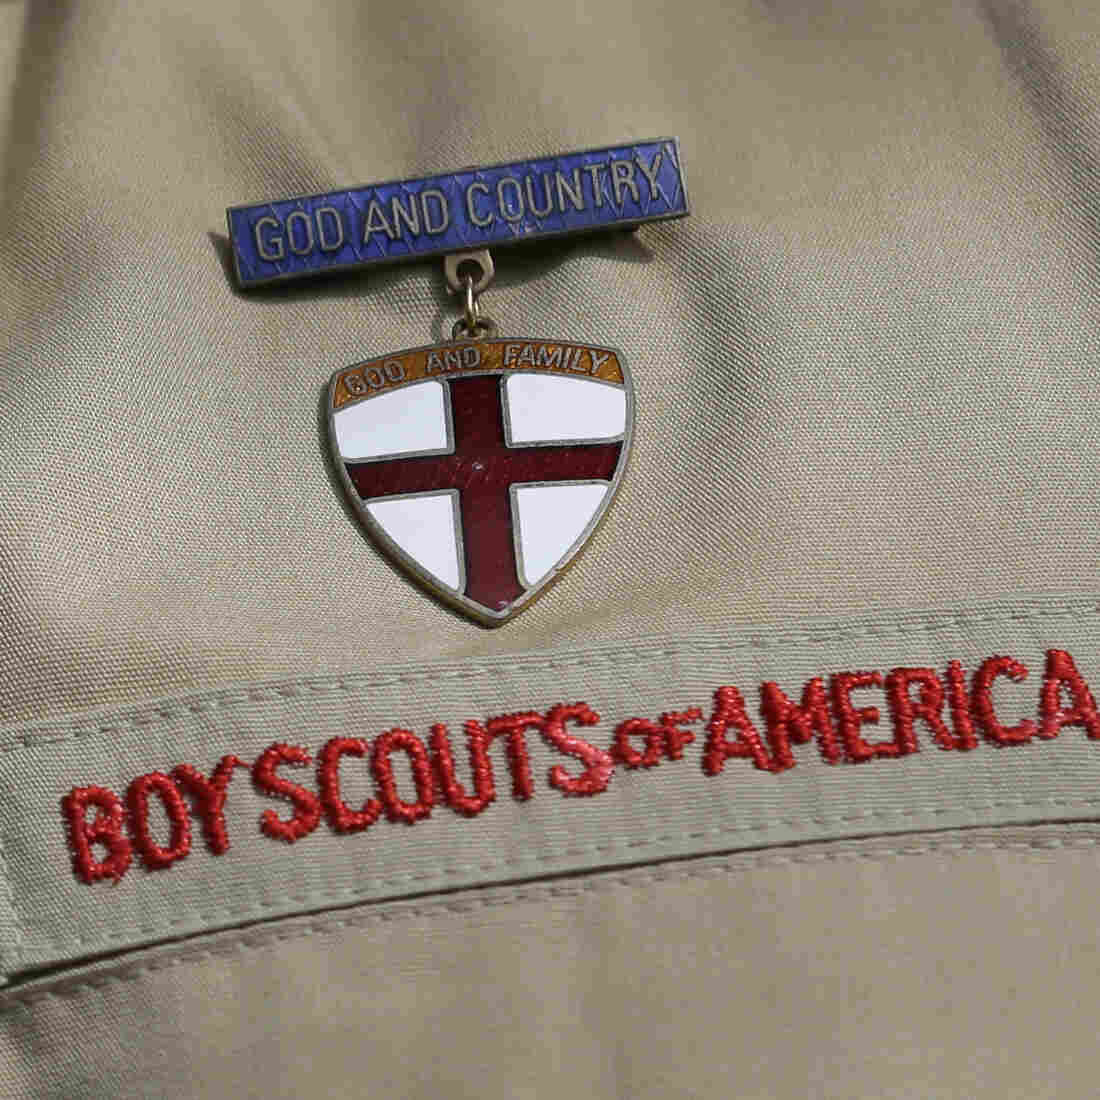 Boy Scouts' Ban On Gay Leaders Leads Disney To End Grants